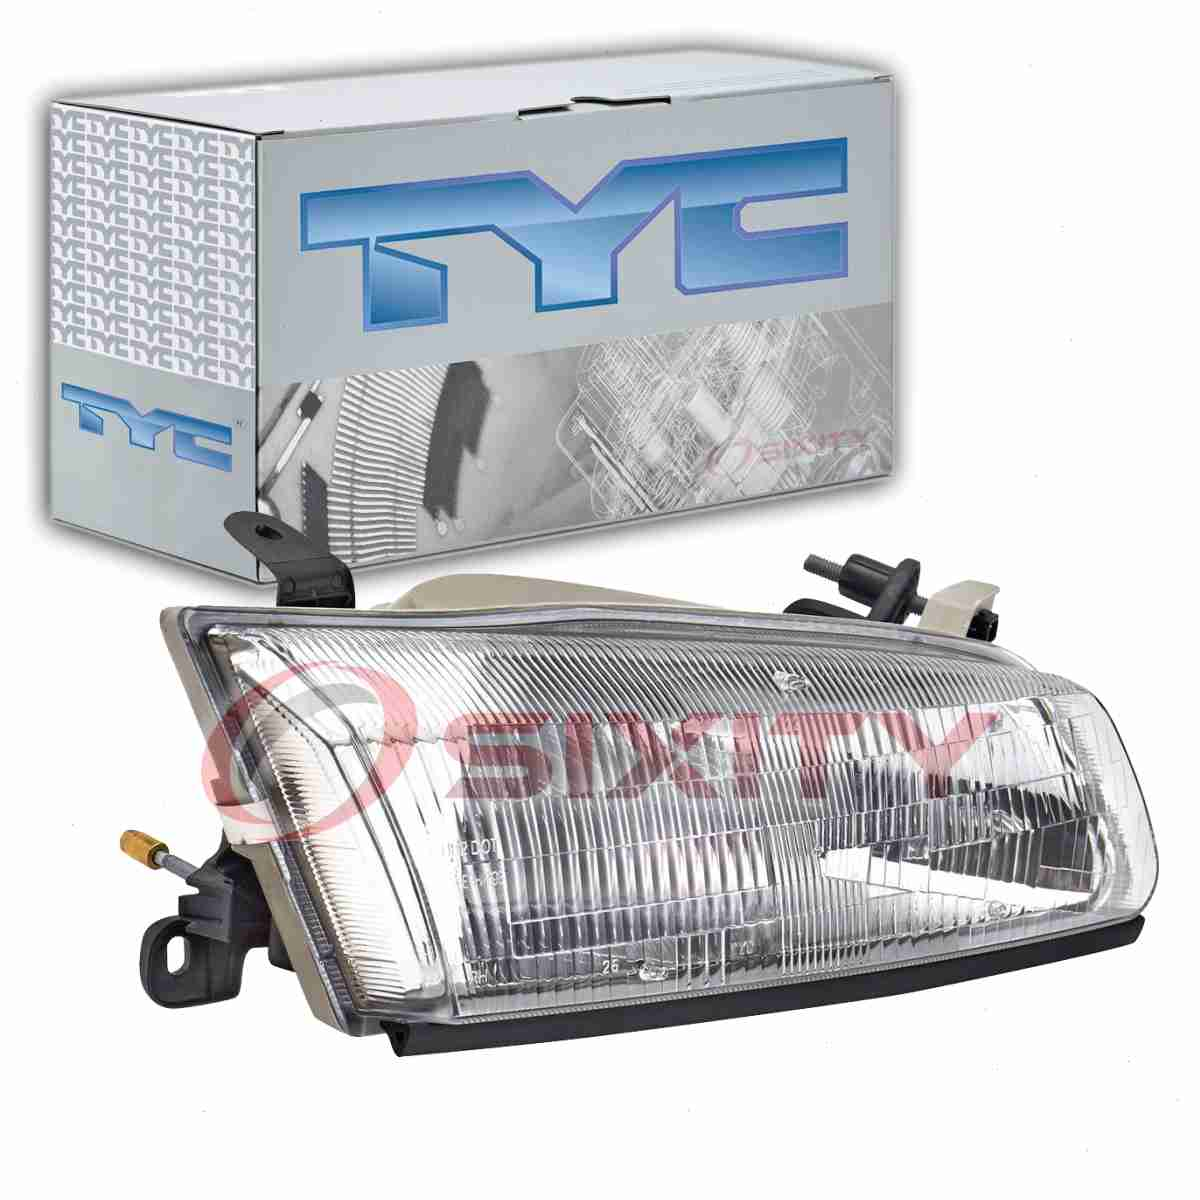 1999 Toyota Camry Headlight Diagram Wiring Diagrams Data Base 996 Tyc Right Assembly 1997 Uu Ebay Rh Com On Engine Schematic For